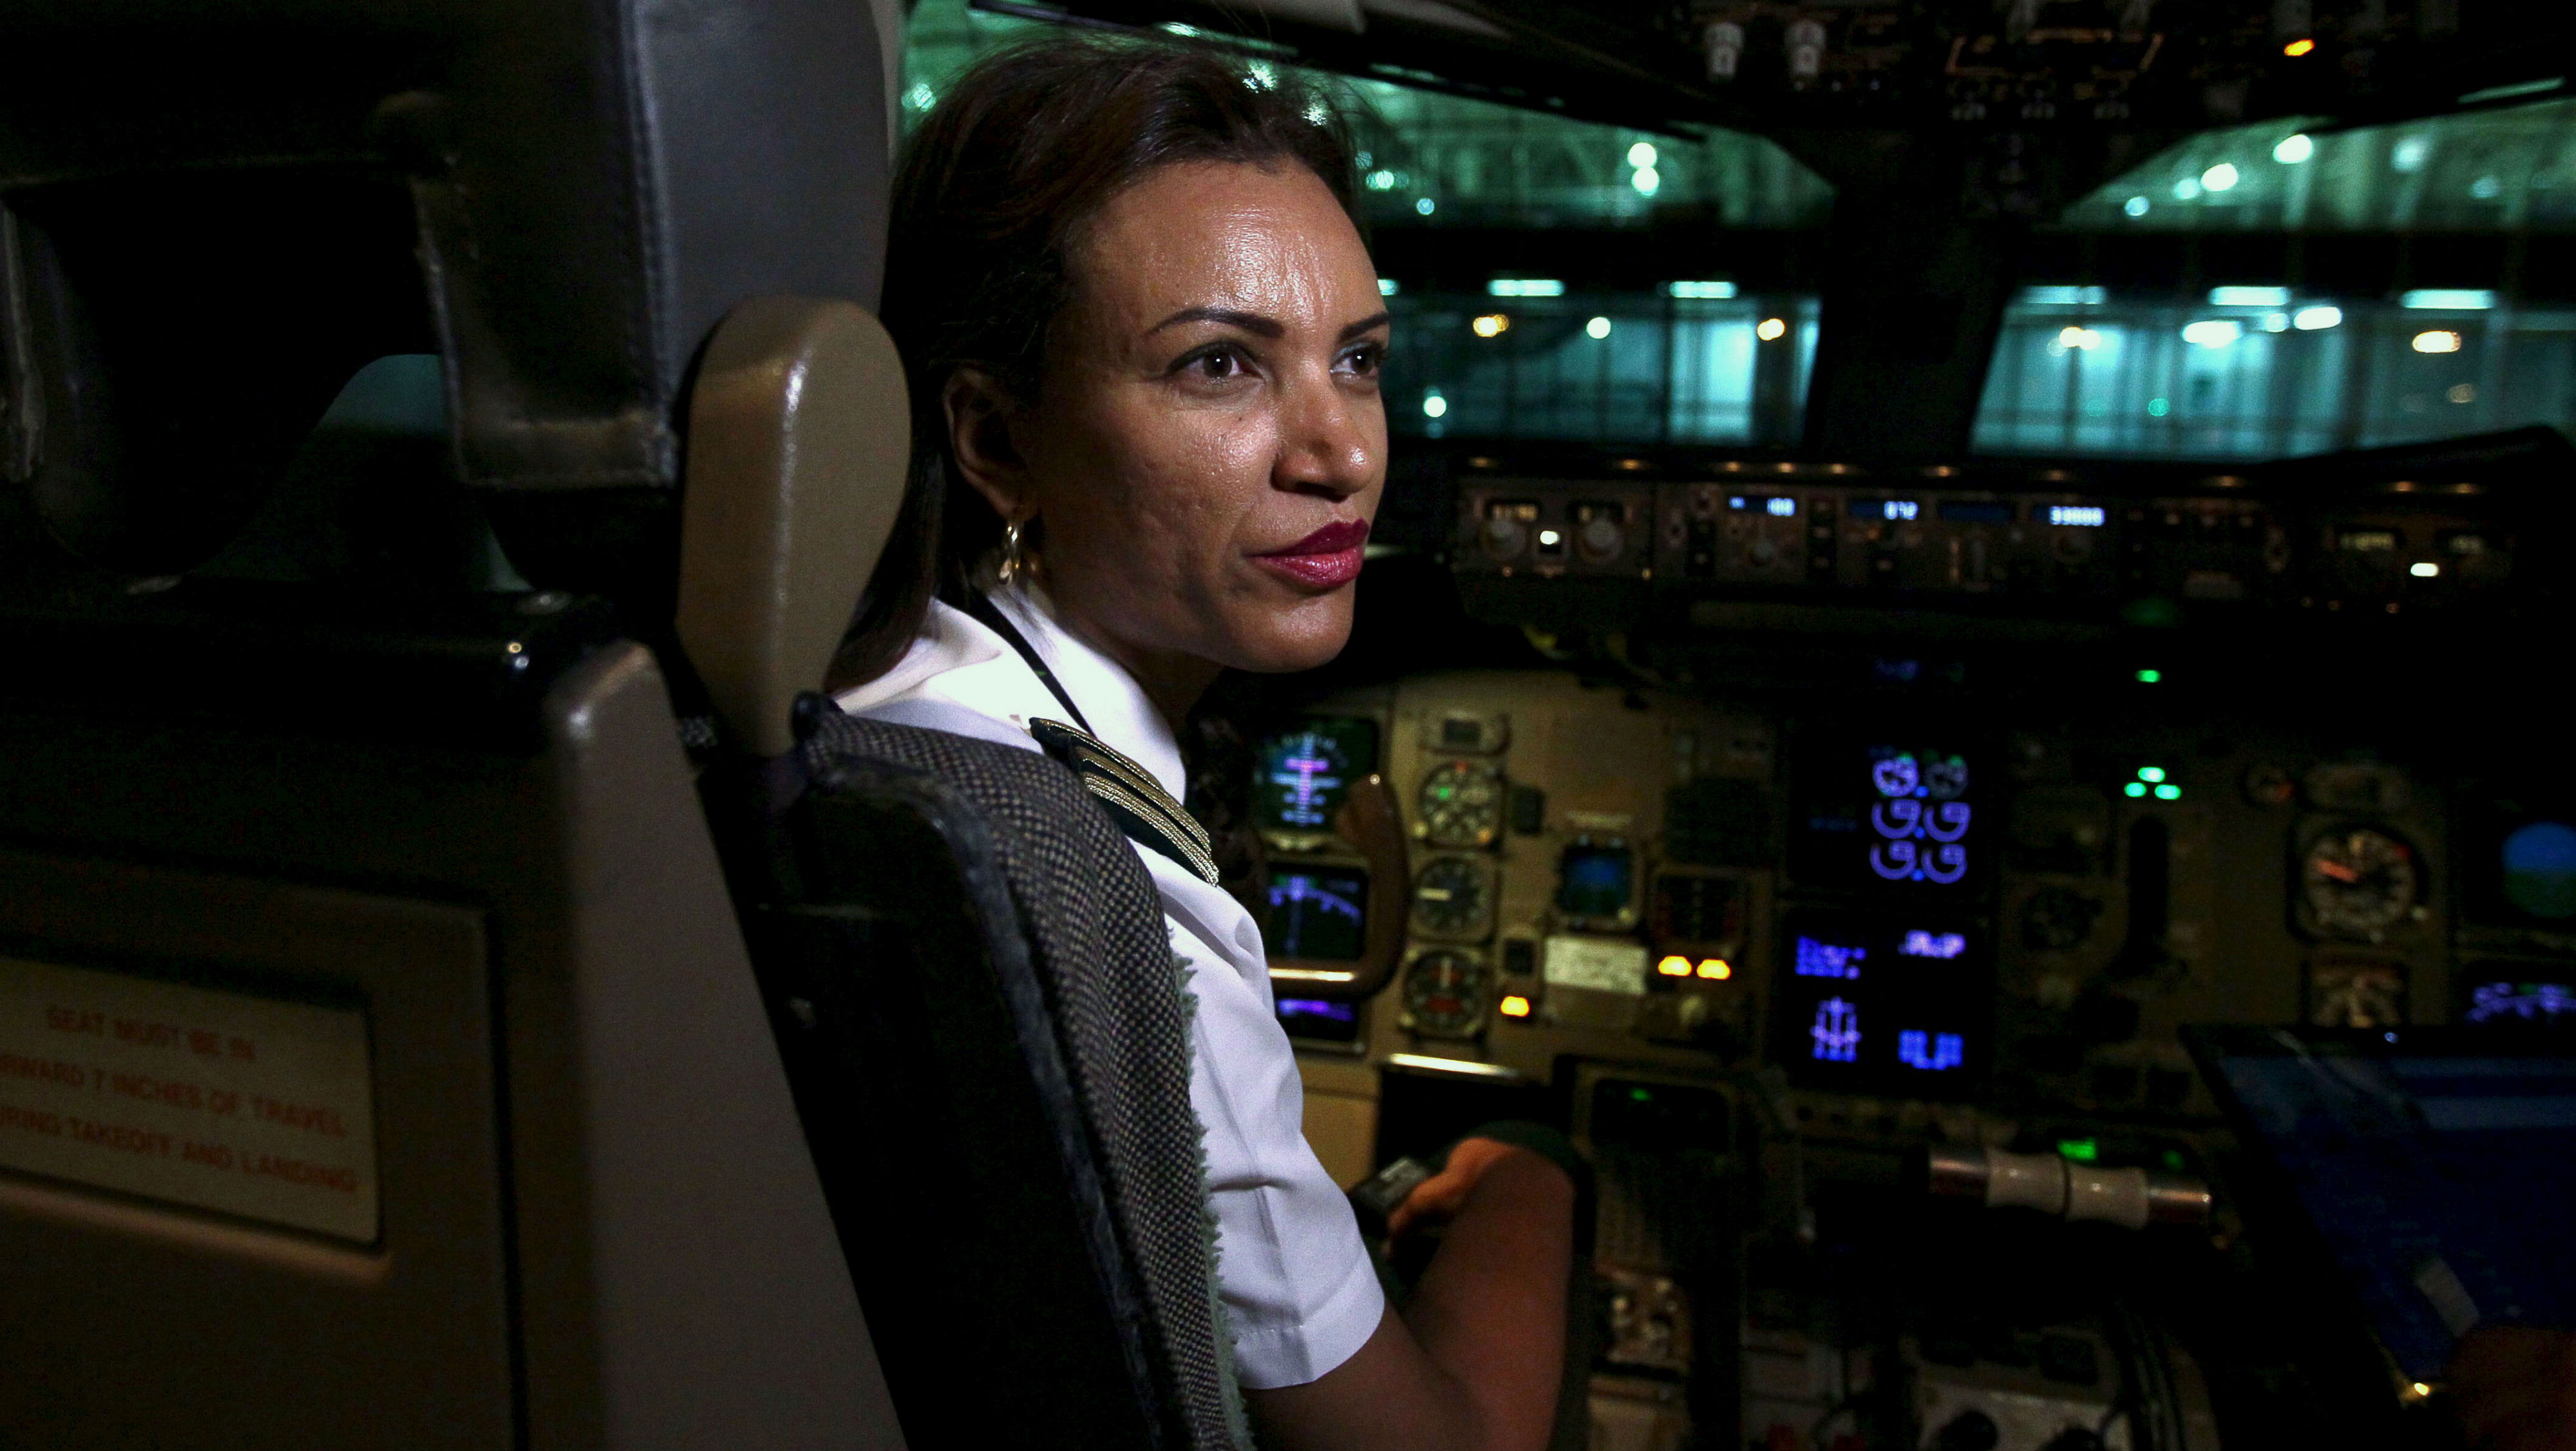 Ethiopian Airlines' first female captain Amsale Gualu prepares for takeoff at Bole international airport in the capital Addis Ababa, November 19, 2015. Ethiopia Airlines on Thursday, dispatched its first ever all-female operated flight. Every aspect of the journey was handled by women, from the ground crew, aircraft maintenance to traffic controllers. Gualu and her co-pilot were charged with flying the crew and passengers to Bangkok, Thailand. REUTERS/Tiksa Negeri TPX IMAGES OF THE DAY    - RTS80D2